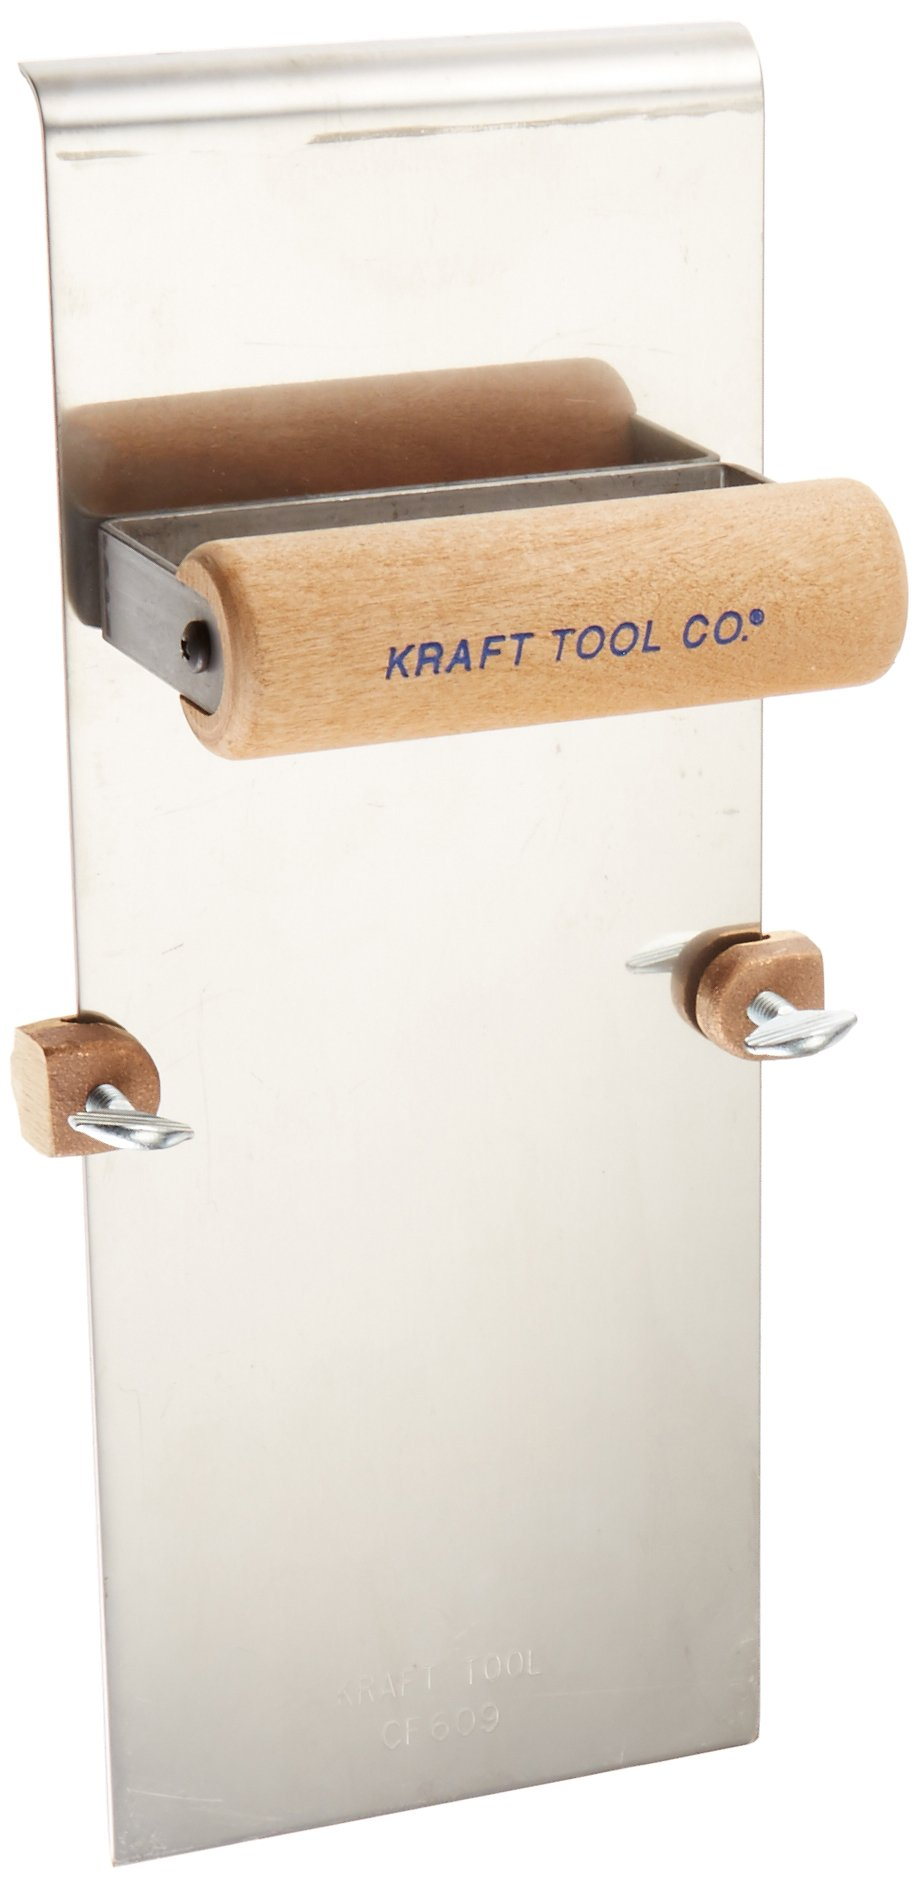 Kraft Tool CF609 Stainless Steel Edger with Adjustable Groover 3/8-Inch -Radius